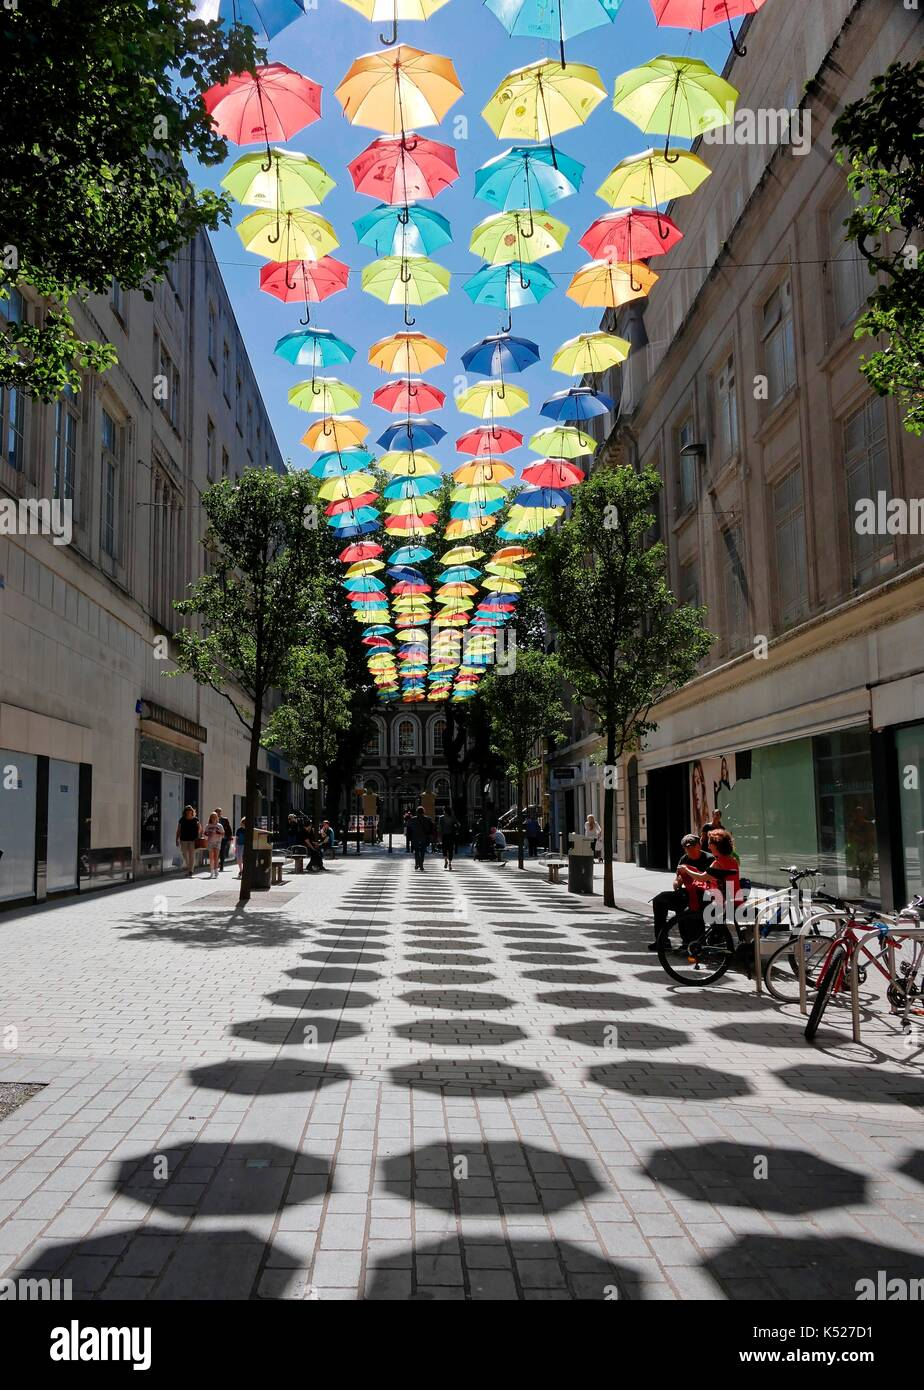 Umbrella Project art installation using 200 colourful brollies in Church Alley, Liverpool. Created to celebrate 10th anniversary of ADHD Foundation. - Stock Image